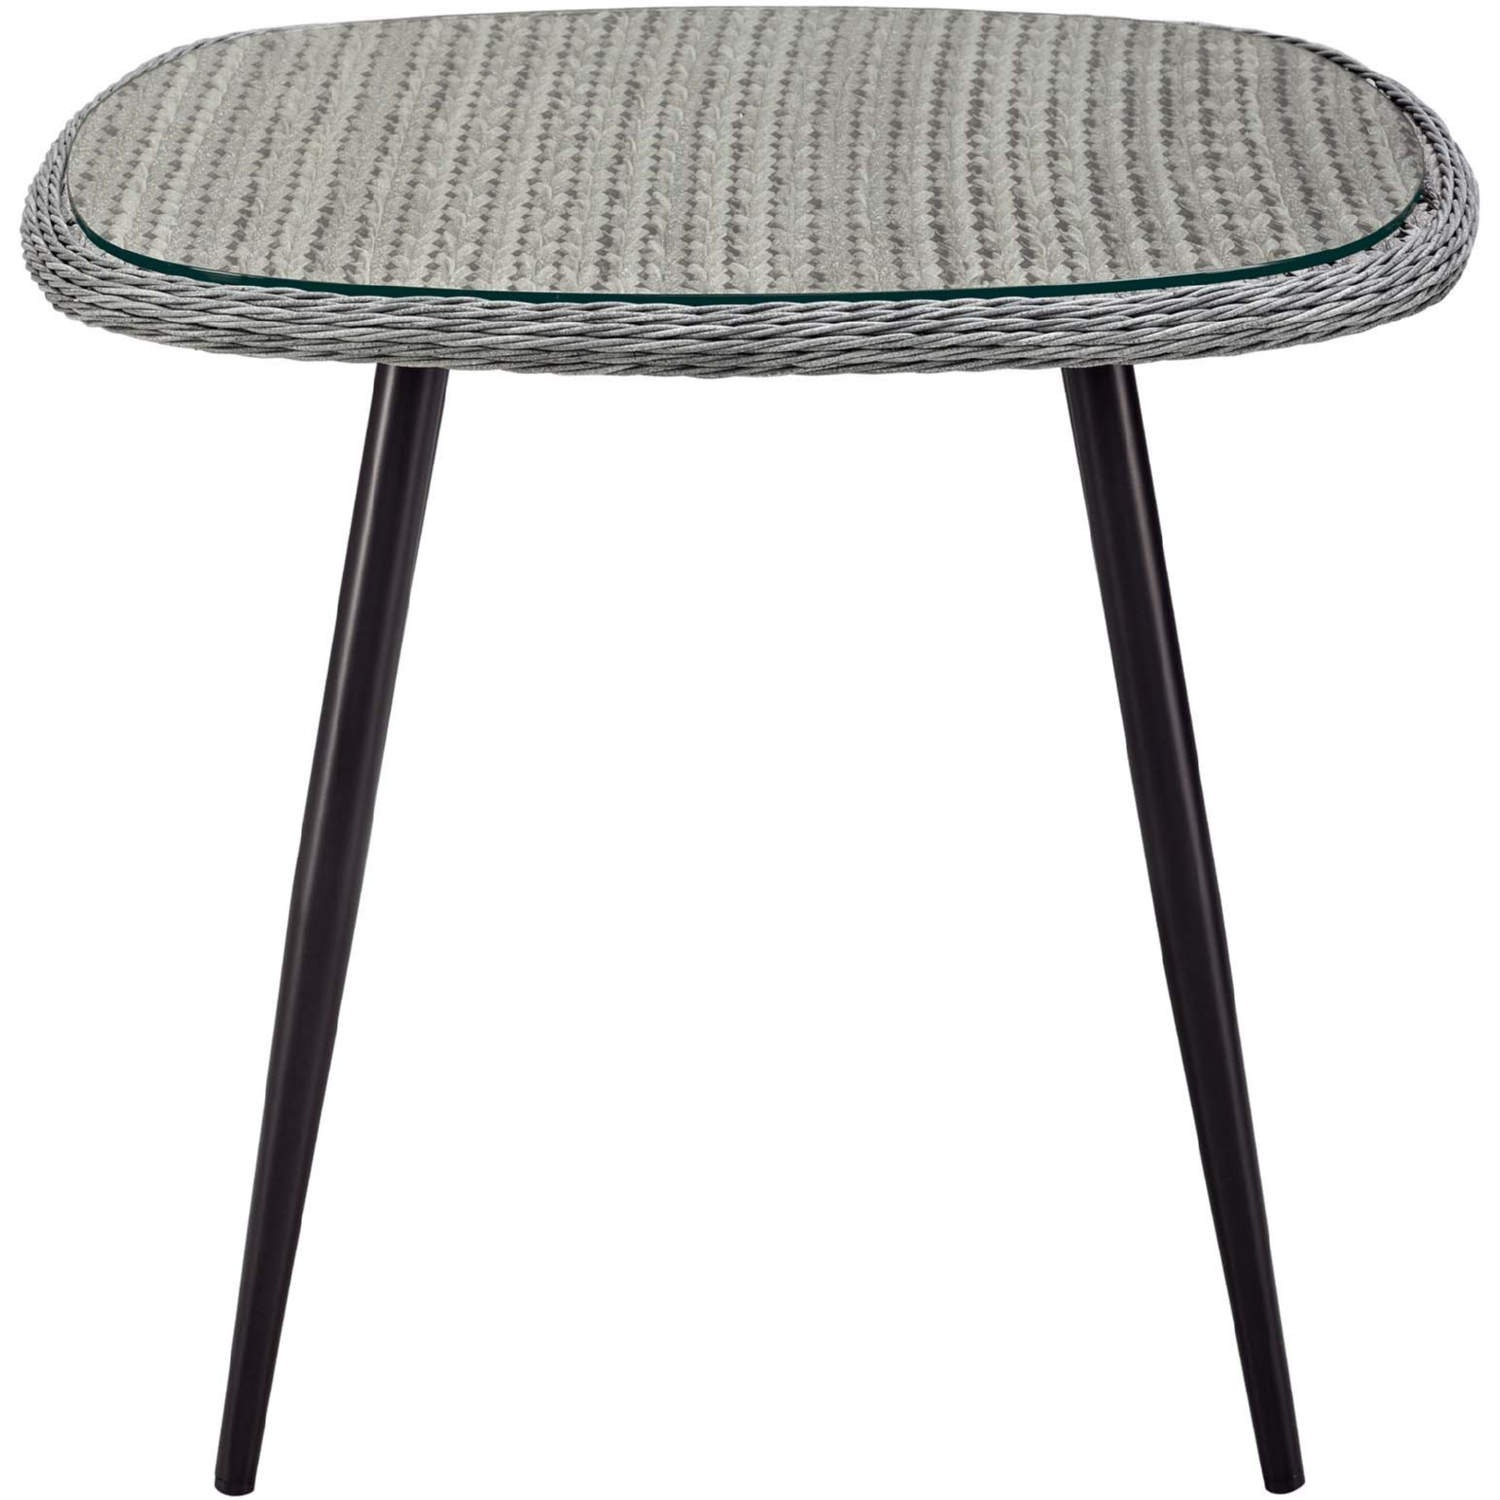 Modern 3-Piece Dining Set In Gray Rattan Weave - image-6